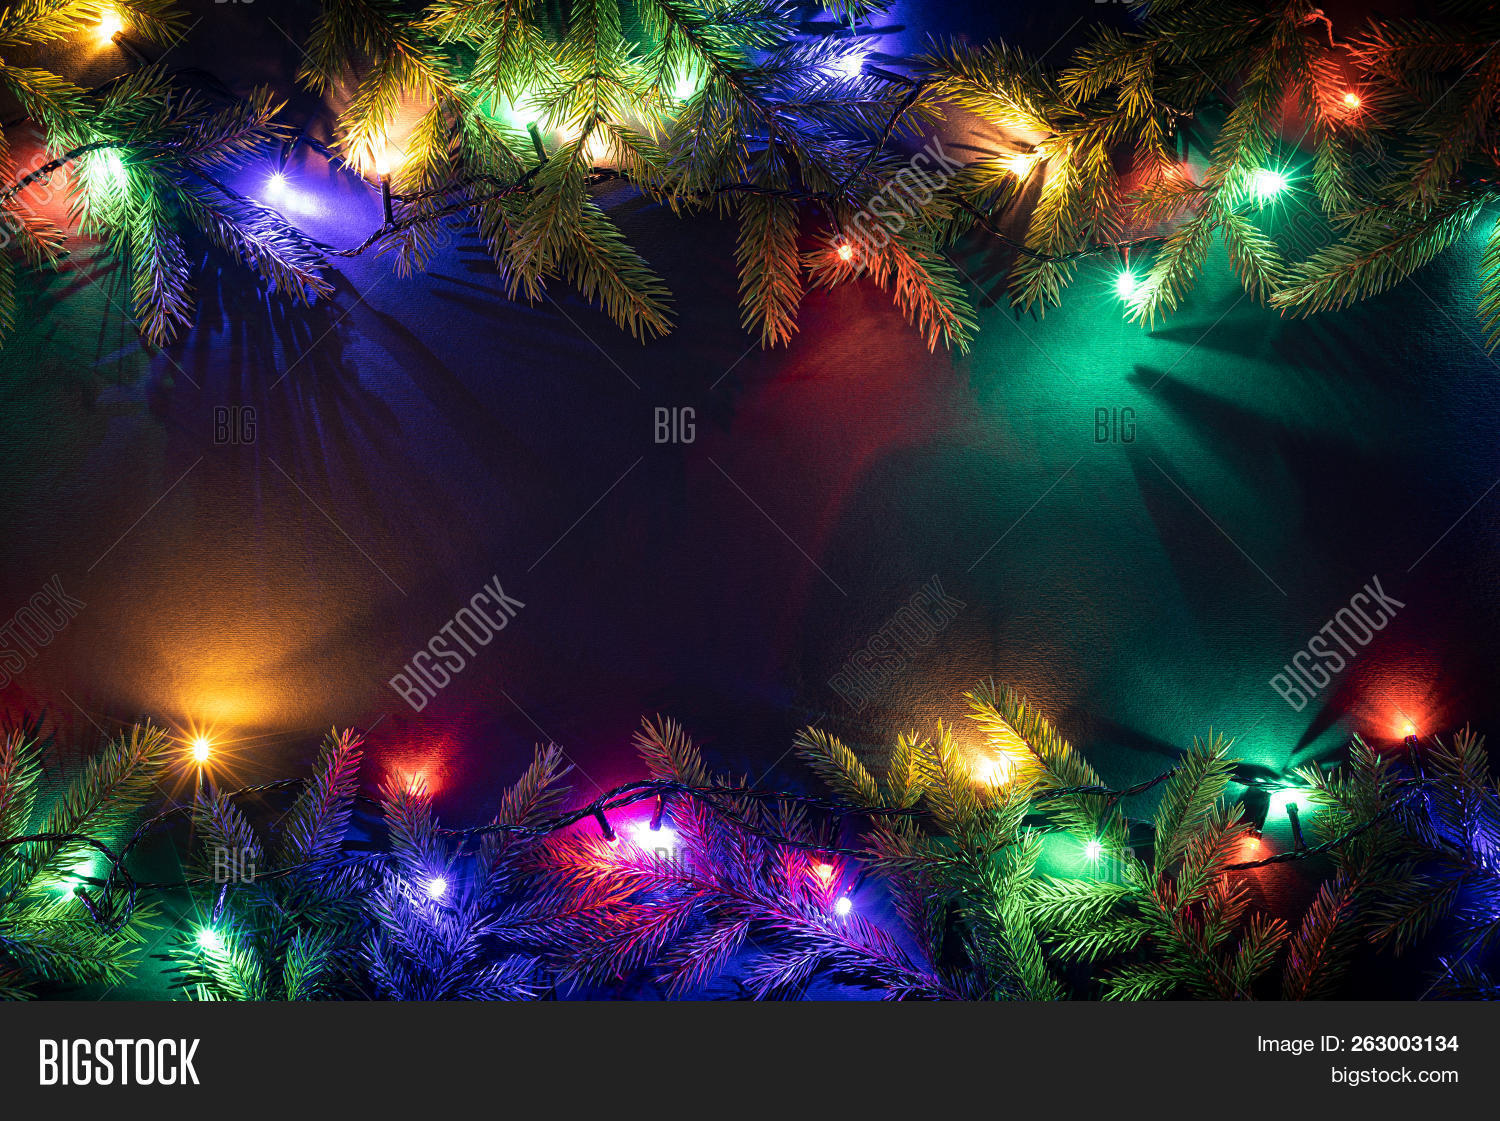 backdrop,background,black,blank,blue sky,branch,bright,celebrate,celebration,christmas background,christmas day,christmas lights,christmassy,christmastide,congratulations,copy space,decor,decoration,decorative,empty,fairy lights,festive,fir,flat lay,frame,garland,greeting,holiday,lights,merry christmas,new year,on black,party,shine,shiny,sparkle,top view,tree,xmas